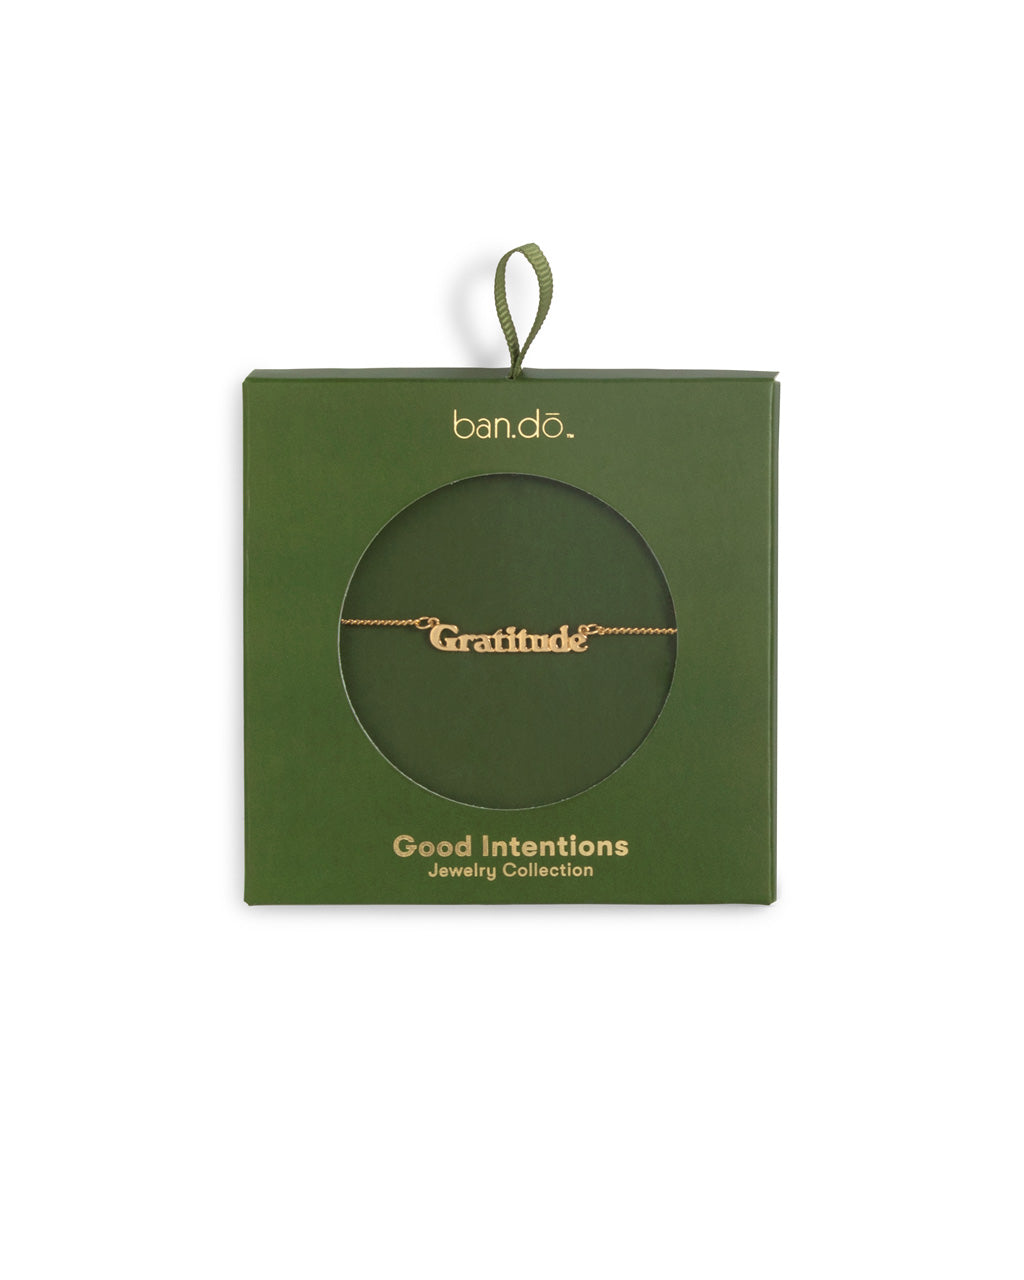 gold chain necklace with the word gratitude shown in green box packaging